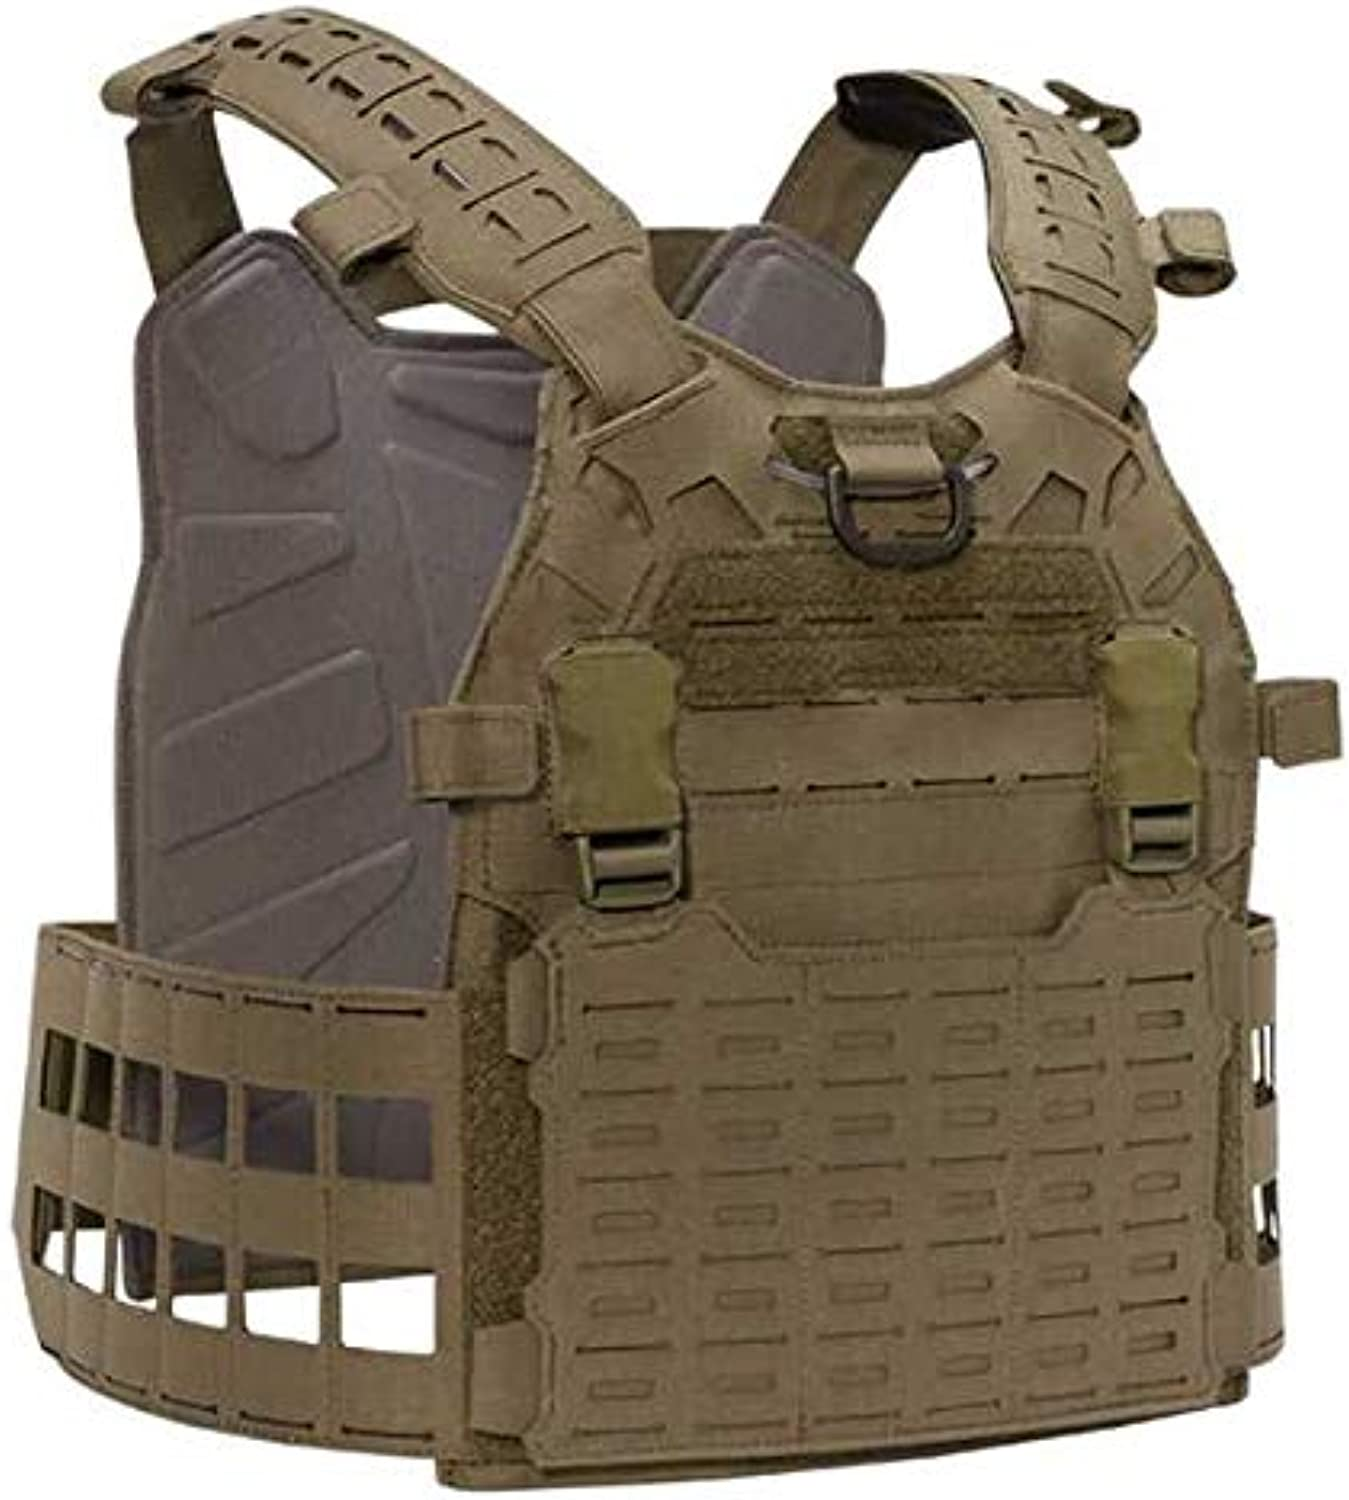 Templars Crusader Gear Plate Carrier